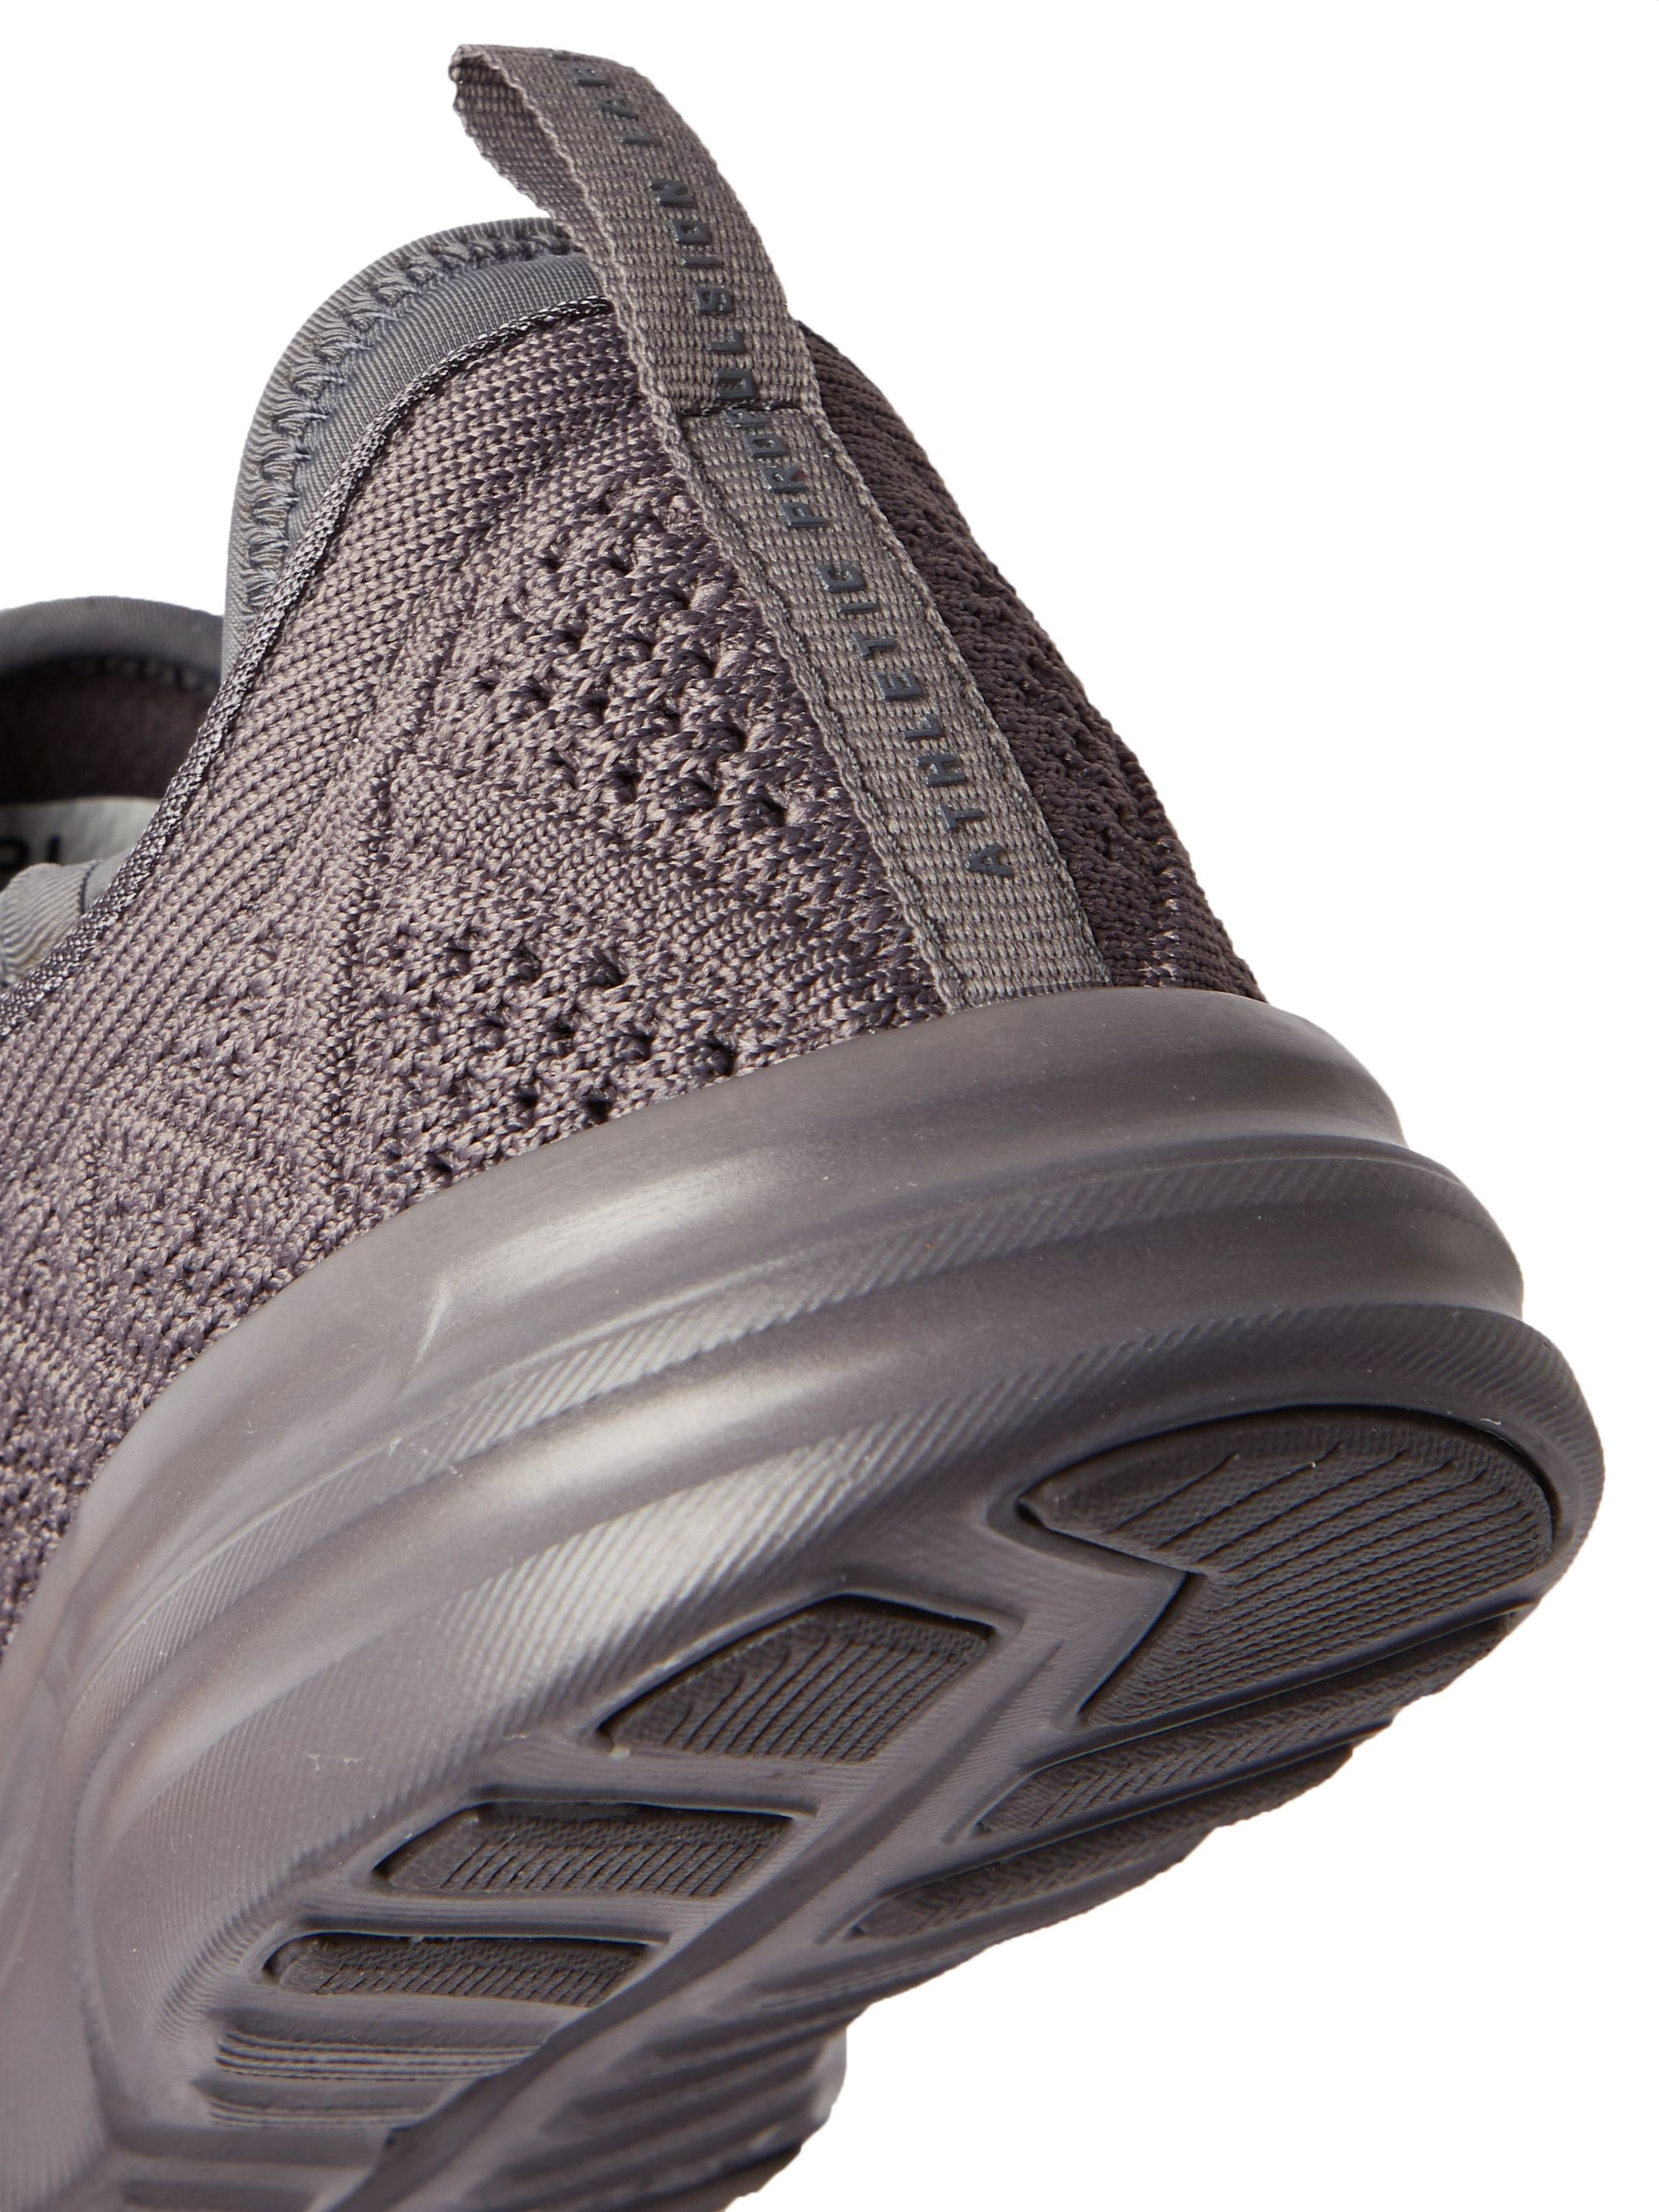 APL ATHLETIC PROPULSION LABS Phantom TechLoom Running Sneakers